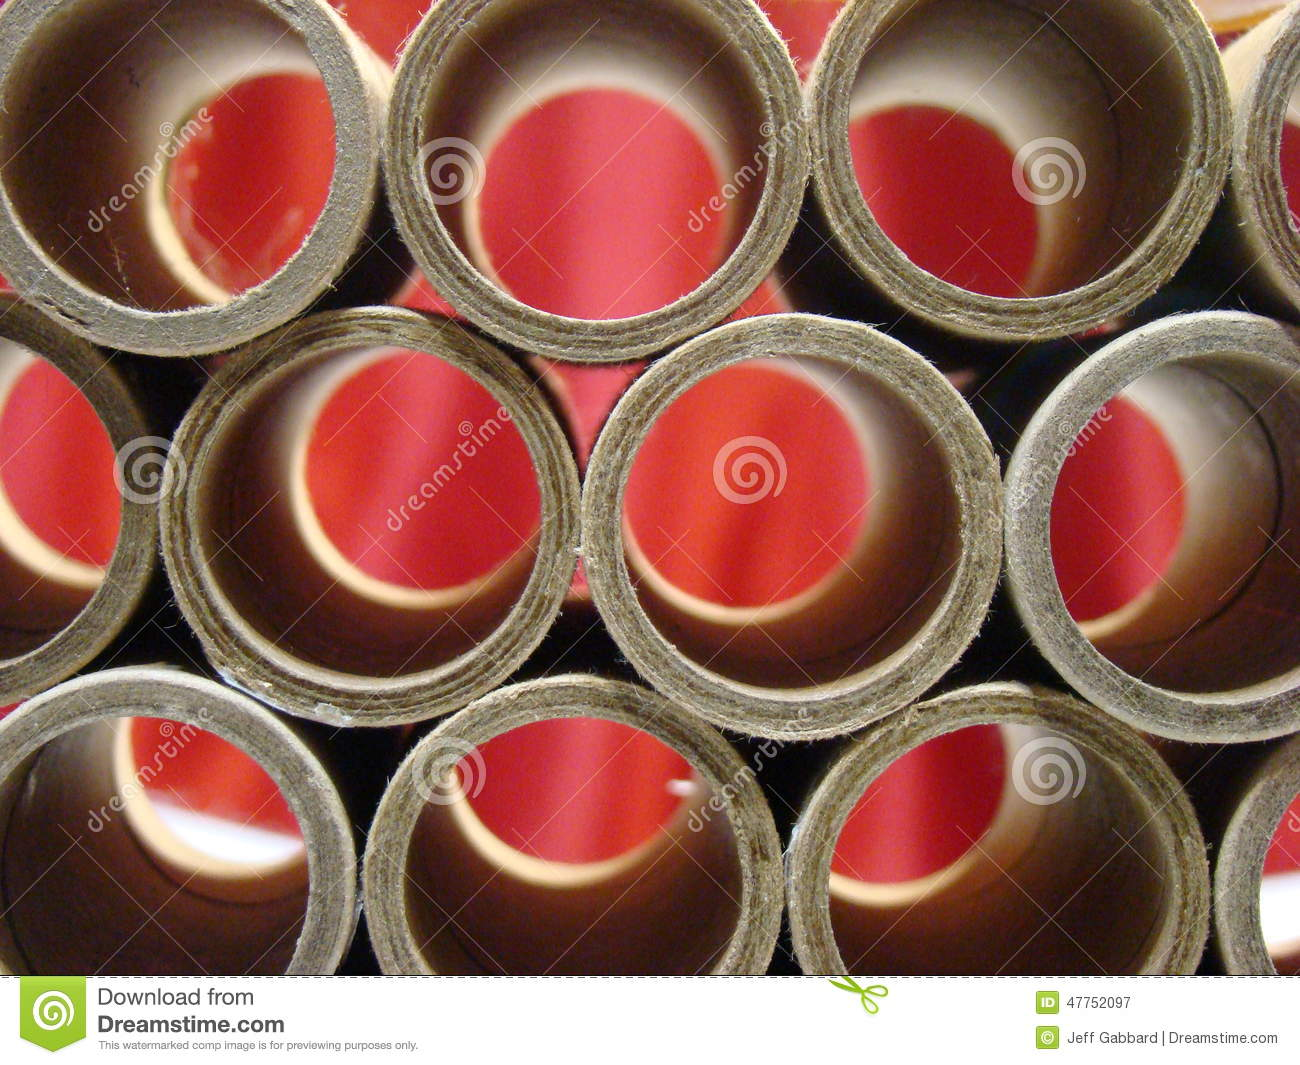 Tubes of cardboard with red background